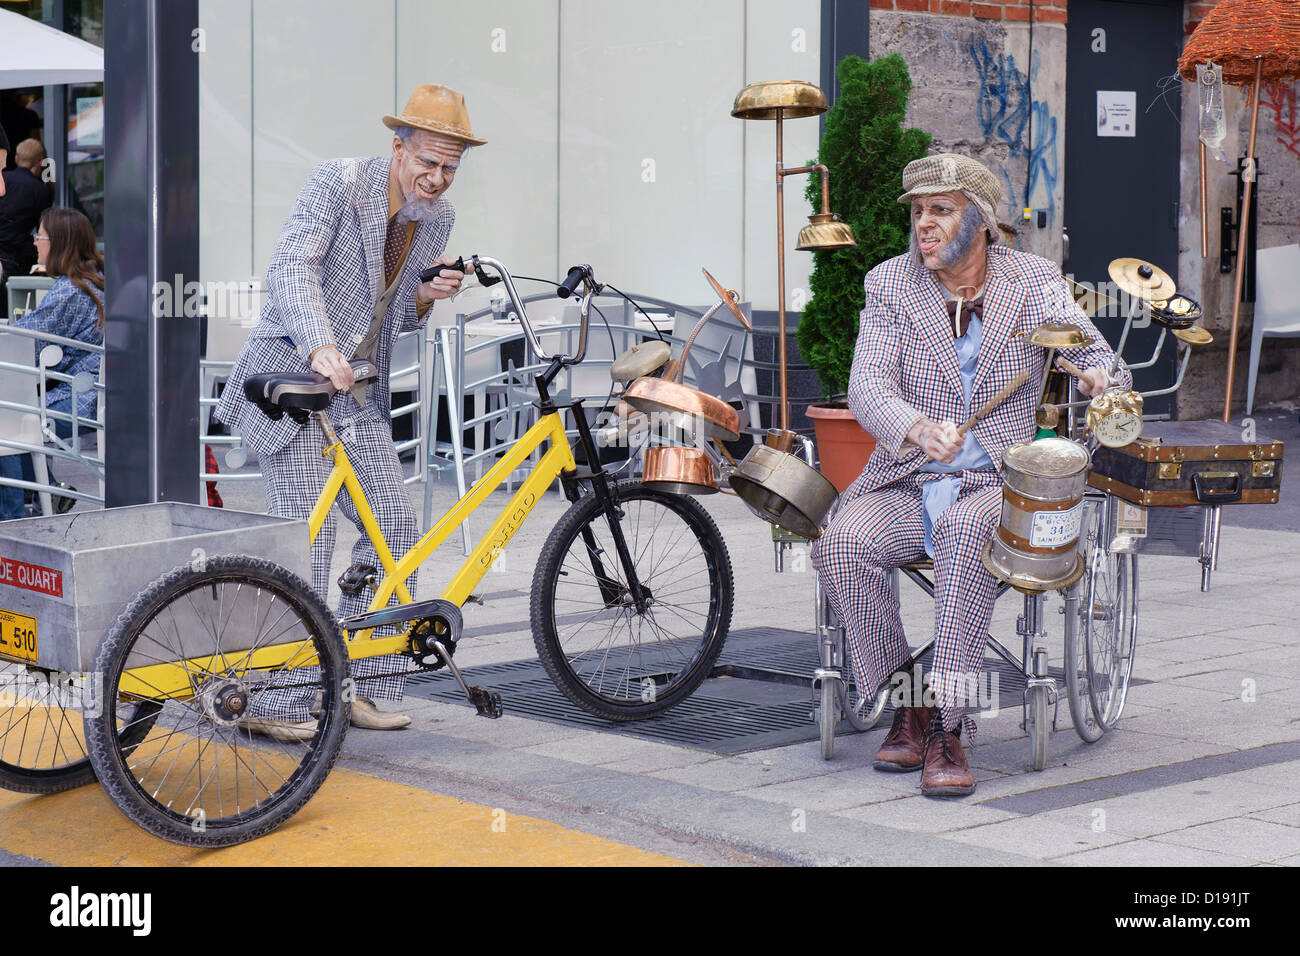 Comedians made up as a very old men during the Just for Laughs Festival in Montreal, province of Quebec, Canada. - Stock Image